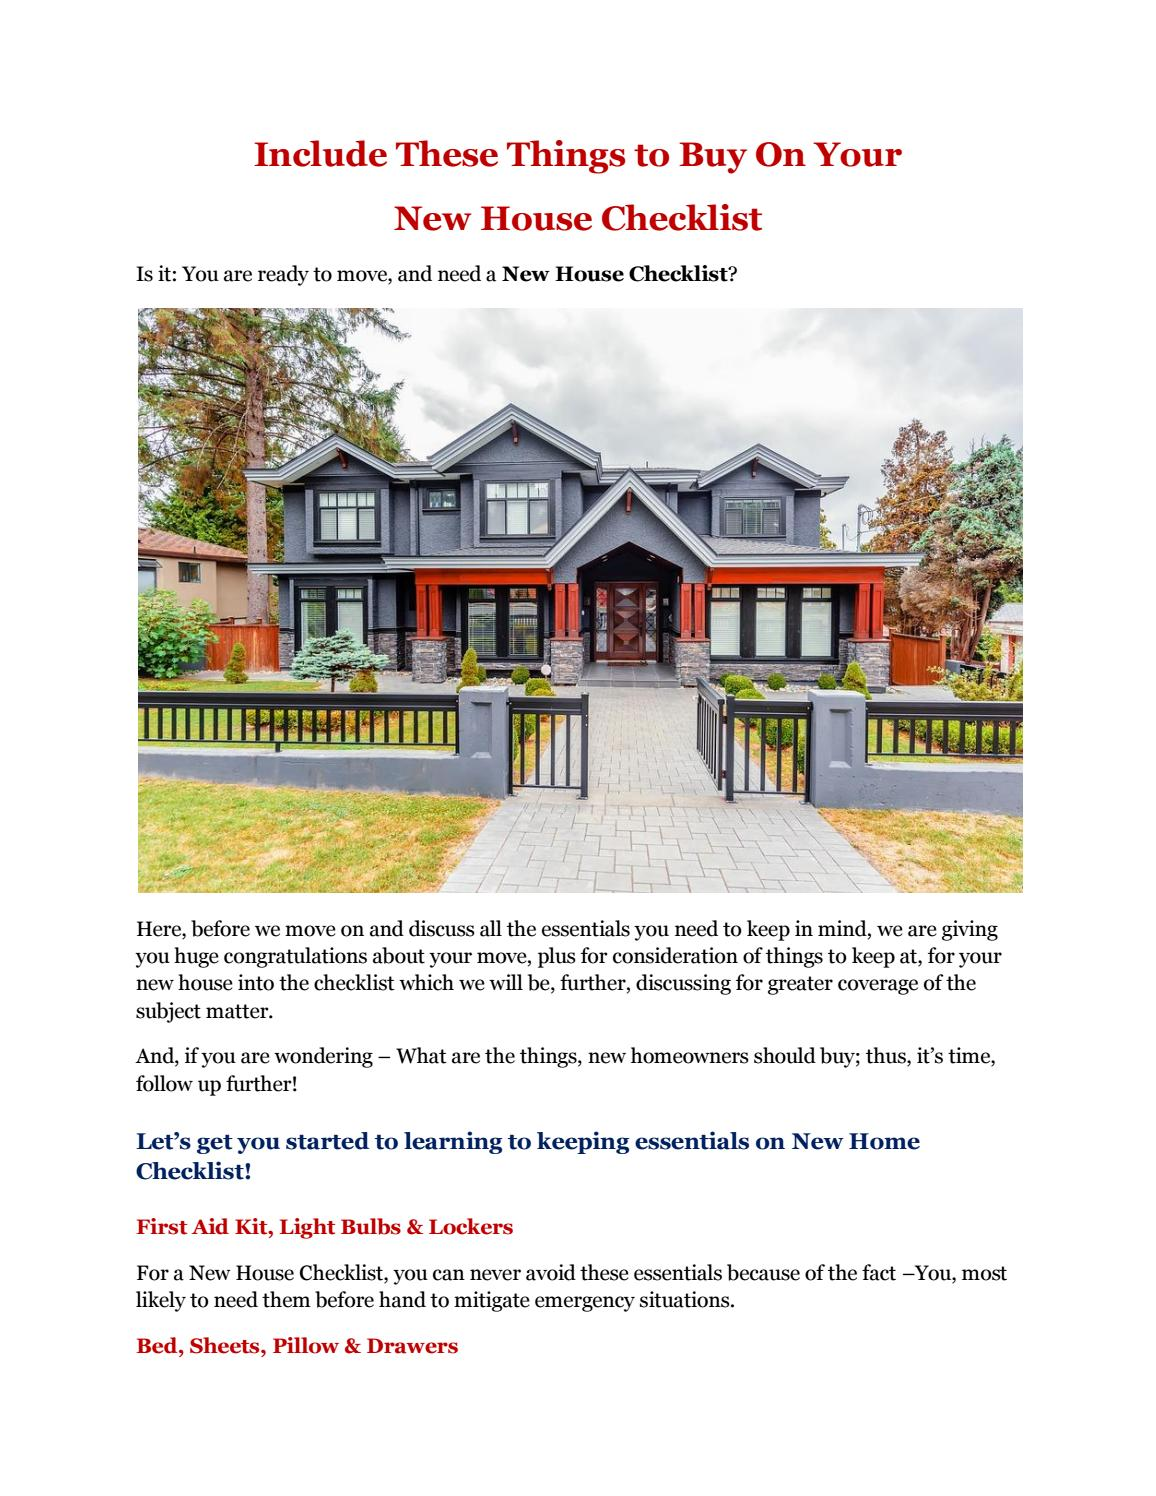 Include These Things To Buy On Your New House Checklist By Kpkrish012 Issuu,Rudolph The Red Nosed Reindeer And The Island Of Misfit Toys Hippo